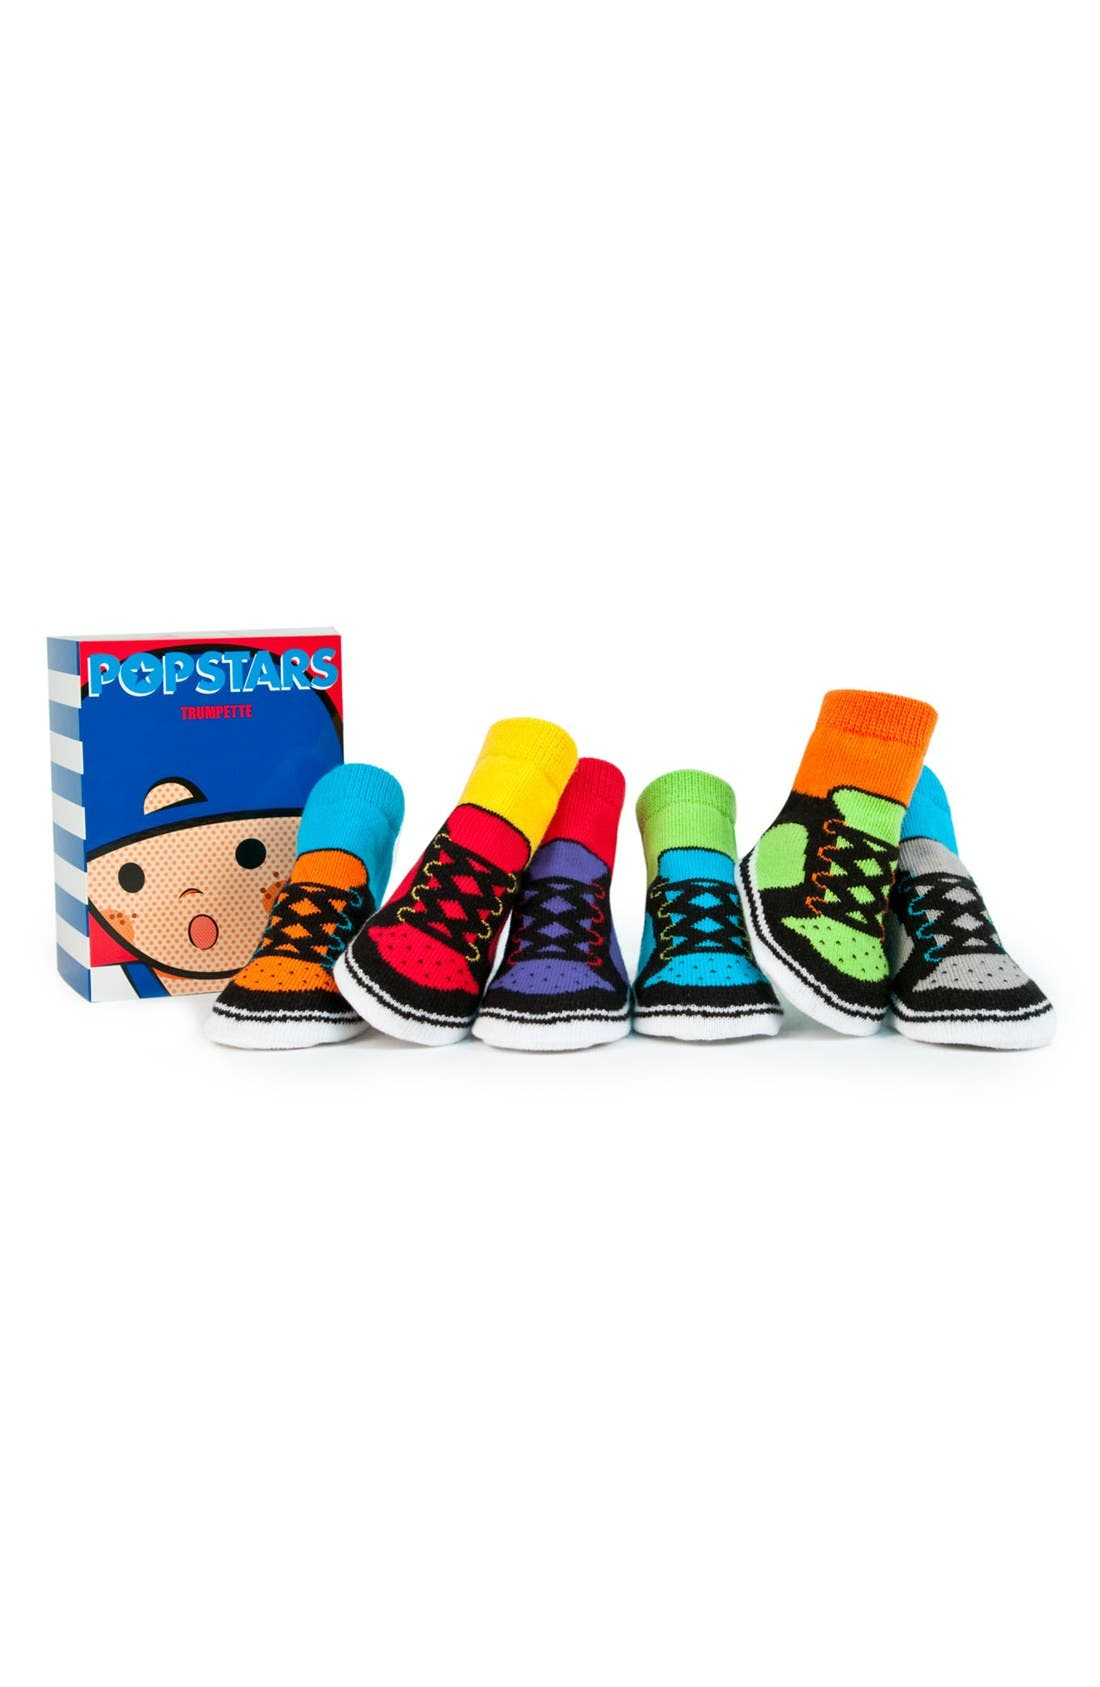 Alternate Image 1 Selected - Trumpette 'Pop Stars' Socks Gift Set (6-Pack)(Baby Boys)